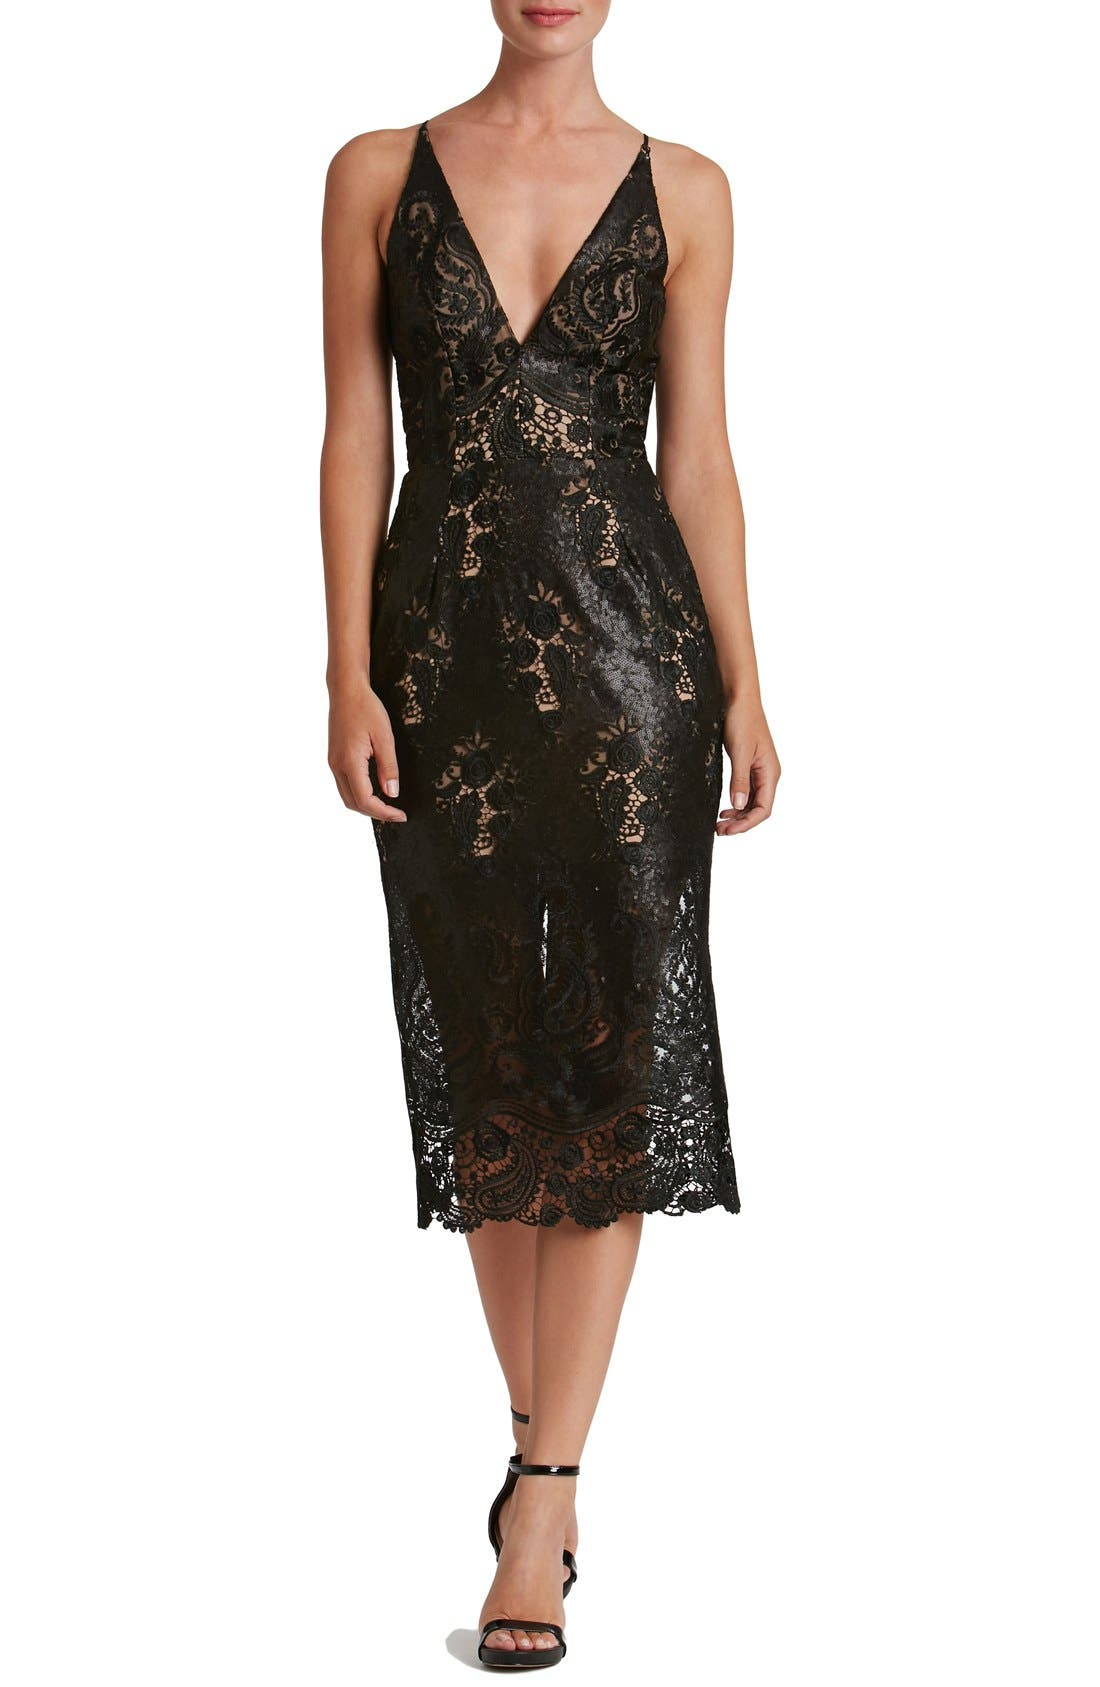 Angela Sequin Lace Midi Dress,                         Main,                         color, Black/ Nude